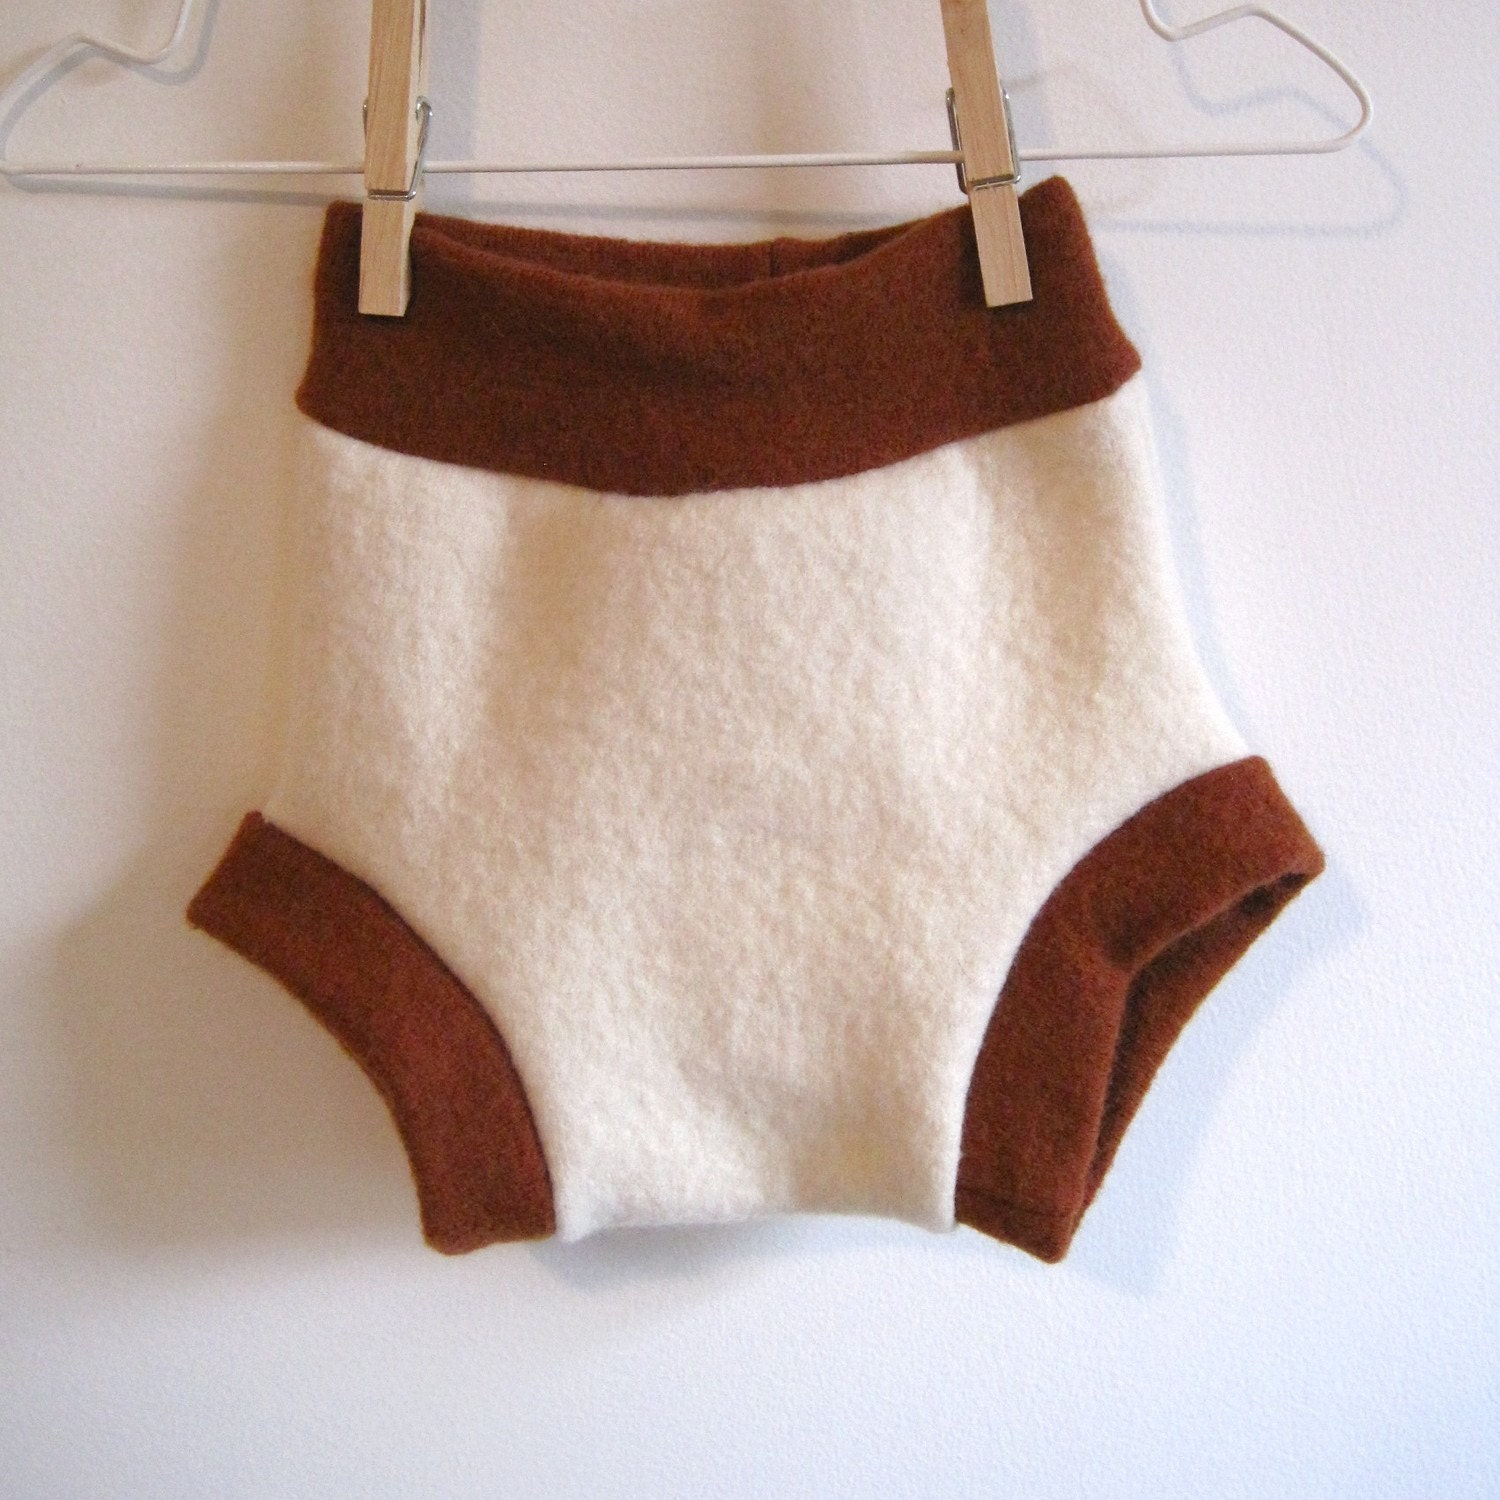 Creamy Pumpkin Wool Shorties, natural cloth diaper cover, size medium